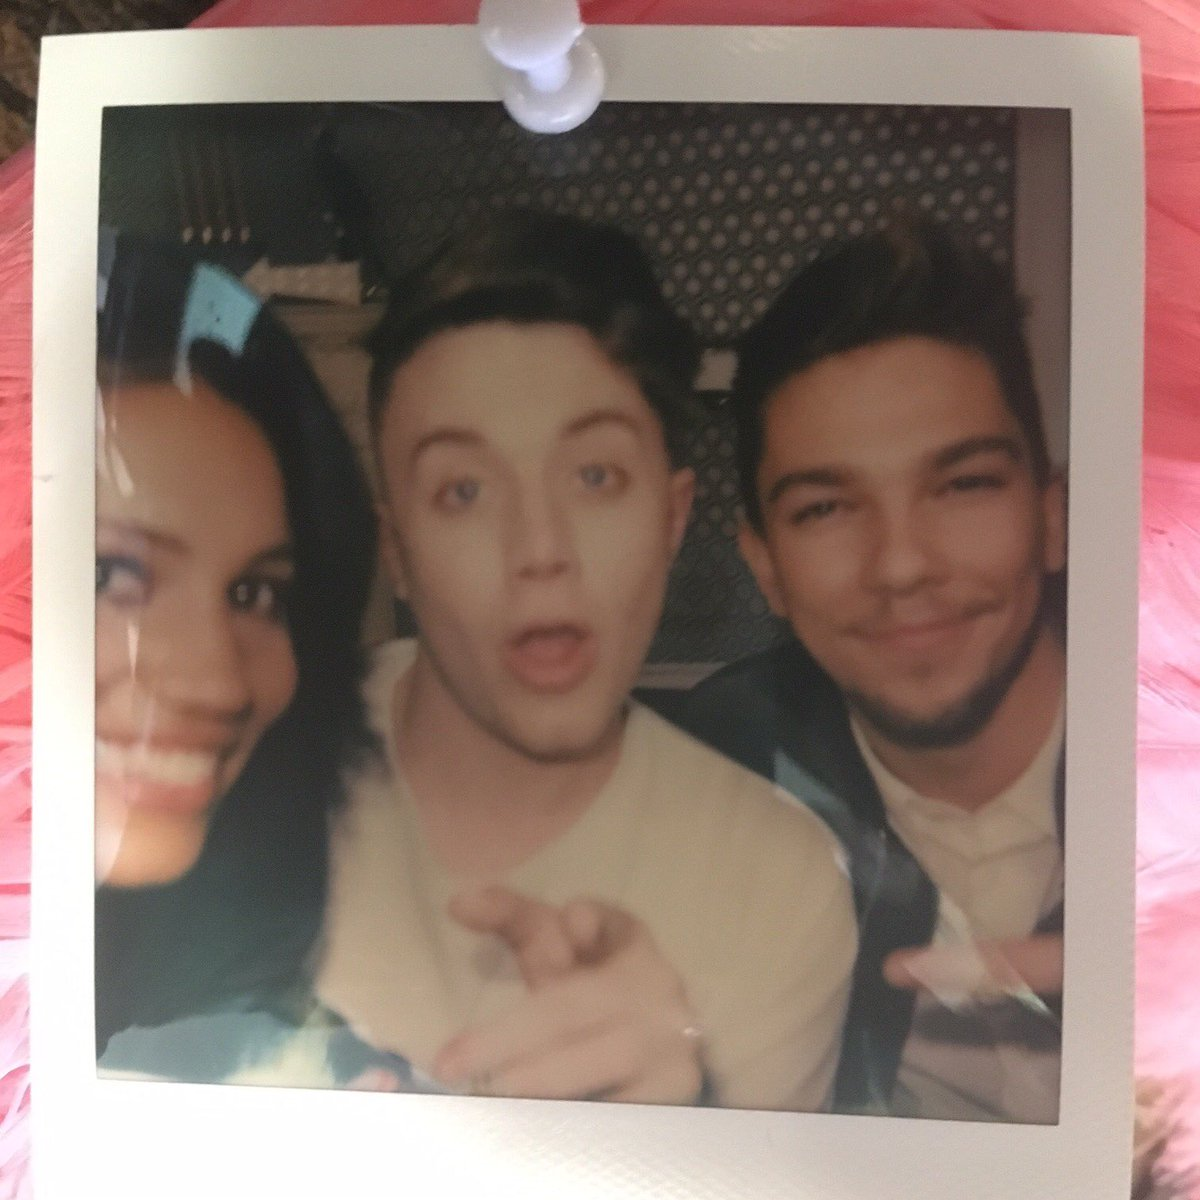 Don't miss @MattTerry93 on @itv2 #2Awesome tomorrow: Sunday 22nd from 1pm! ✌